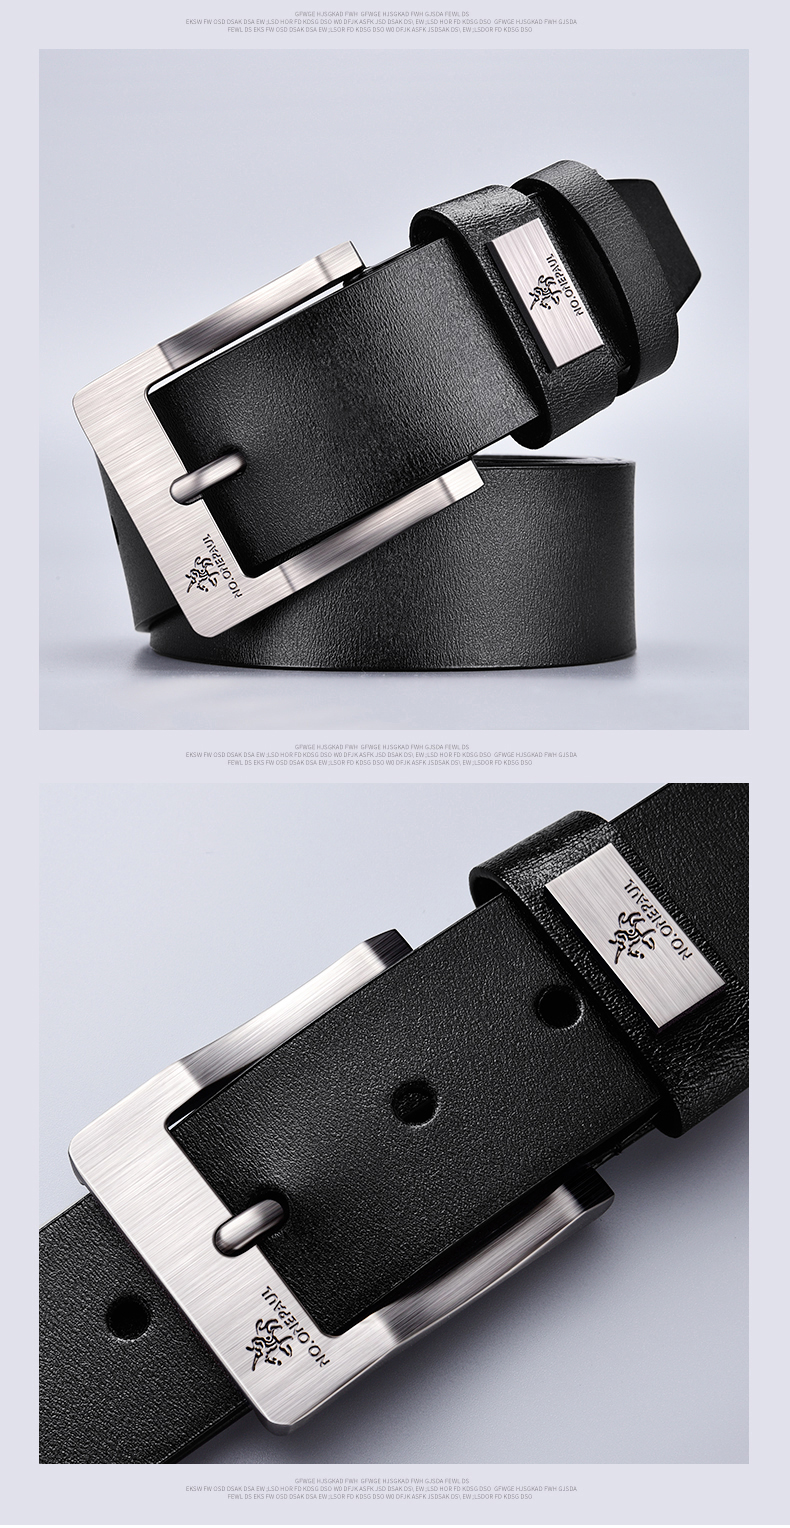 H1346d11a2f344deeaf1c2c2c0f78802cr - NO.ONEPAUL cow genuine leather luxury strap male belts for men new fashion classice vintage pin buckle men belt High Quality